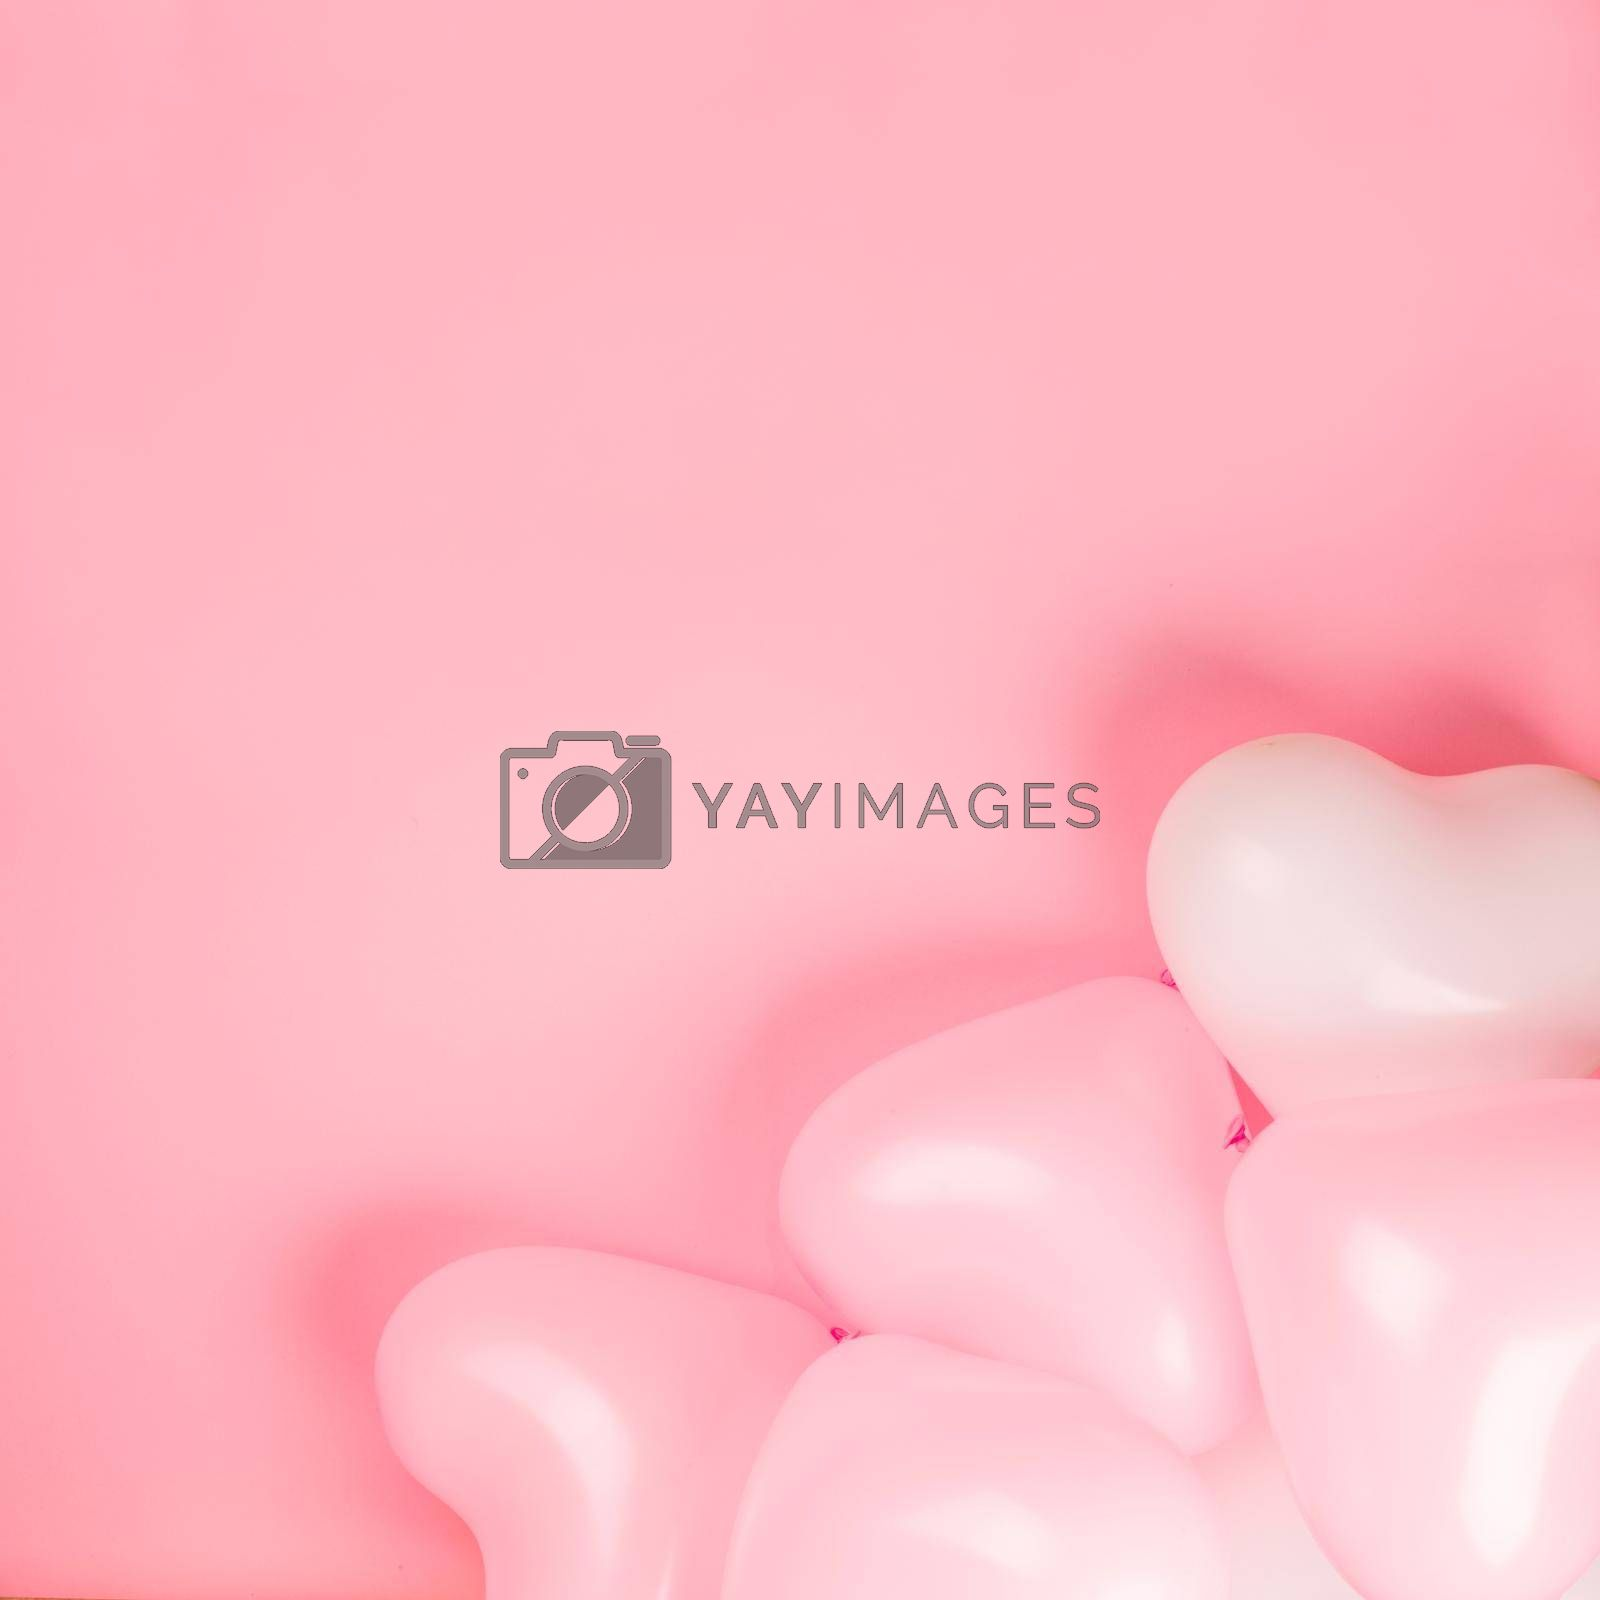 Happy valentines day greetings many heart shaped pink and white balloons background border frame flat lay with copy space for text